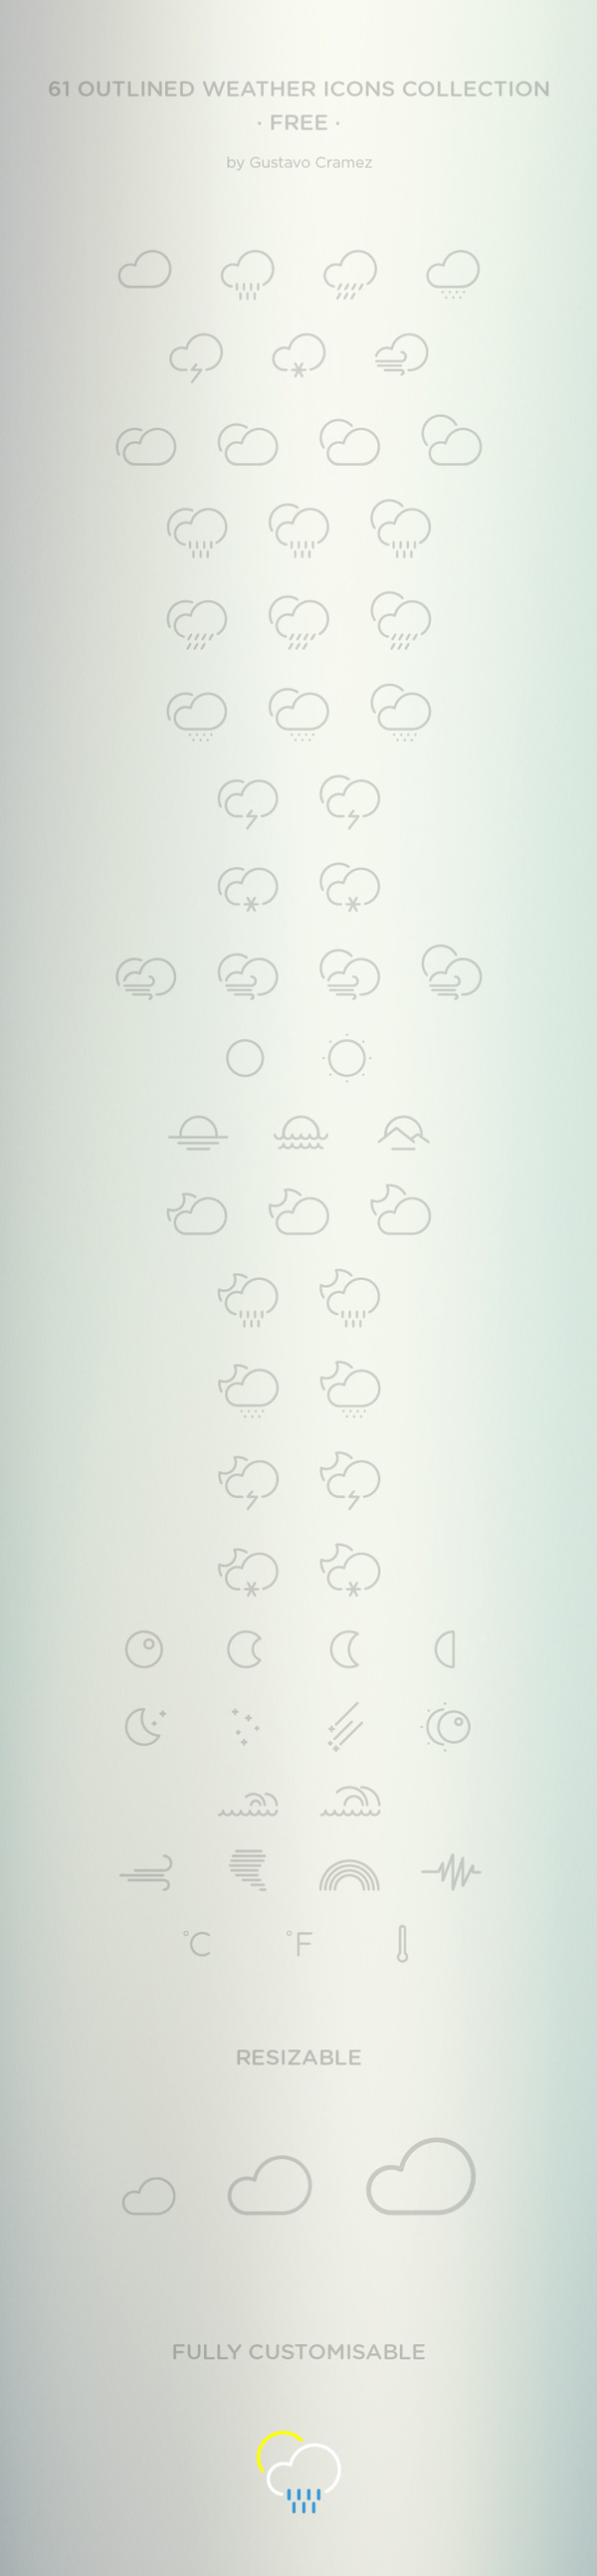 61-Weather-icons